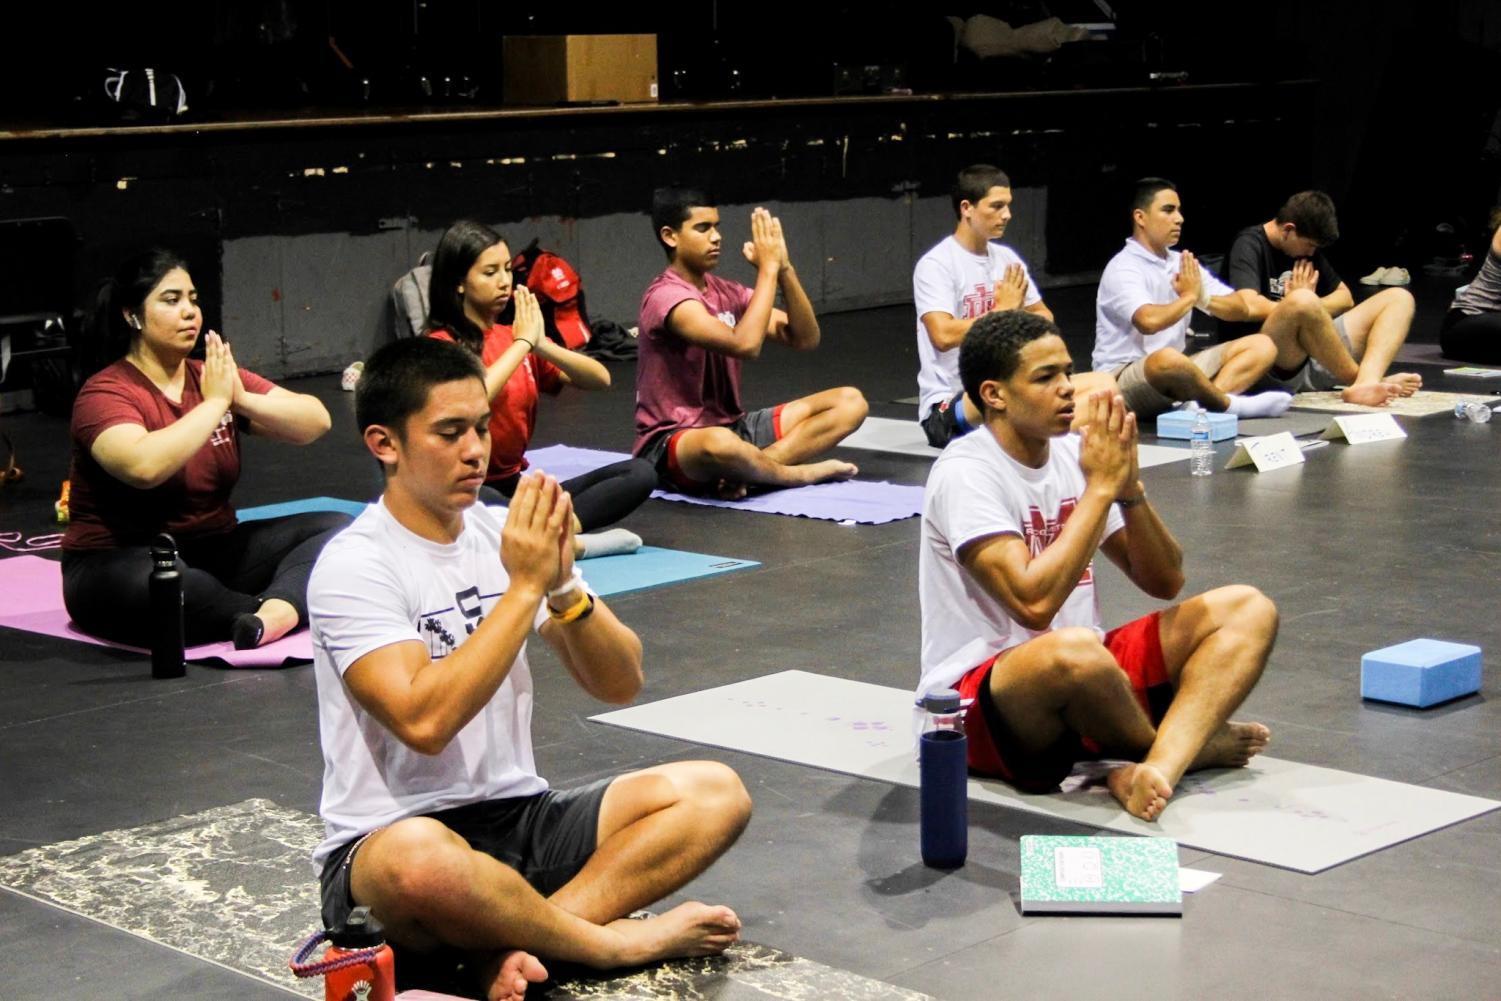 NAMASTE%3A+Sophomore+Joshua+Hunter+and+junior+Josiah+Zamora+practice+traditional+yoga+poses+in+class.+The+class+emphasizes+mental+wellness+and+inner+peace.+%E2%80%9C...every+time+we+finish+practicing+yoga%2C+we+end+with+eight+minutes+of+dead+silence%2C+no+movement%2C+to+reconnect+with+your+breath+and+relax+and+take+in+everything%2C%22+senior+Jeffrey+Peterson+said.+%22That%27s+my+favorite+part.%22